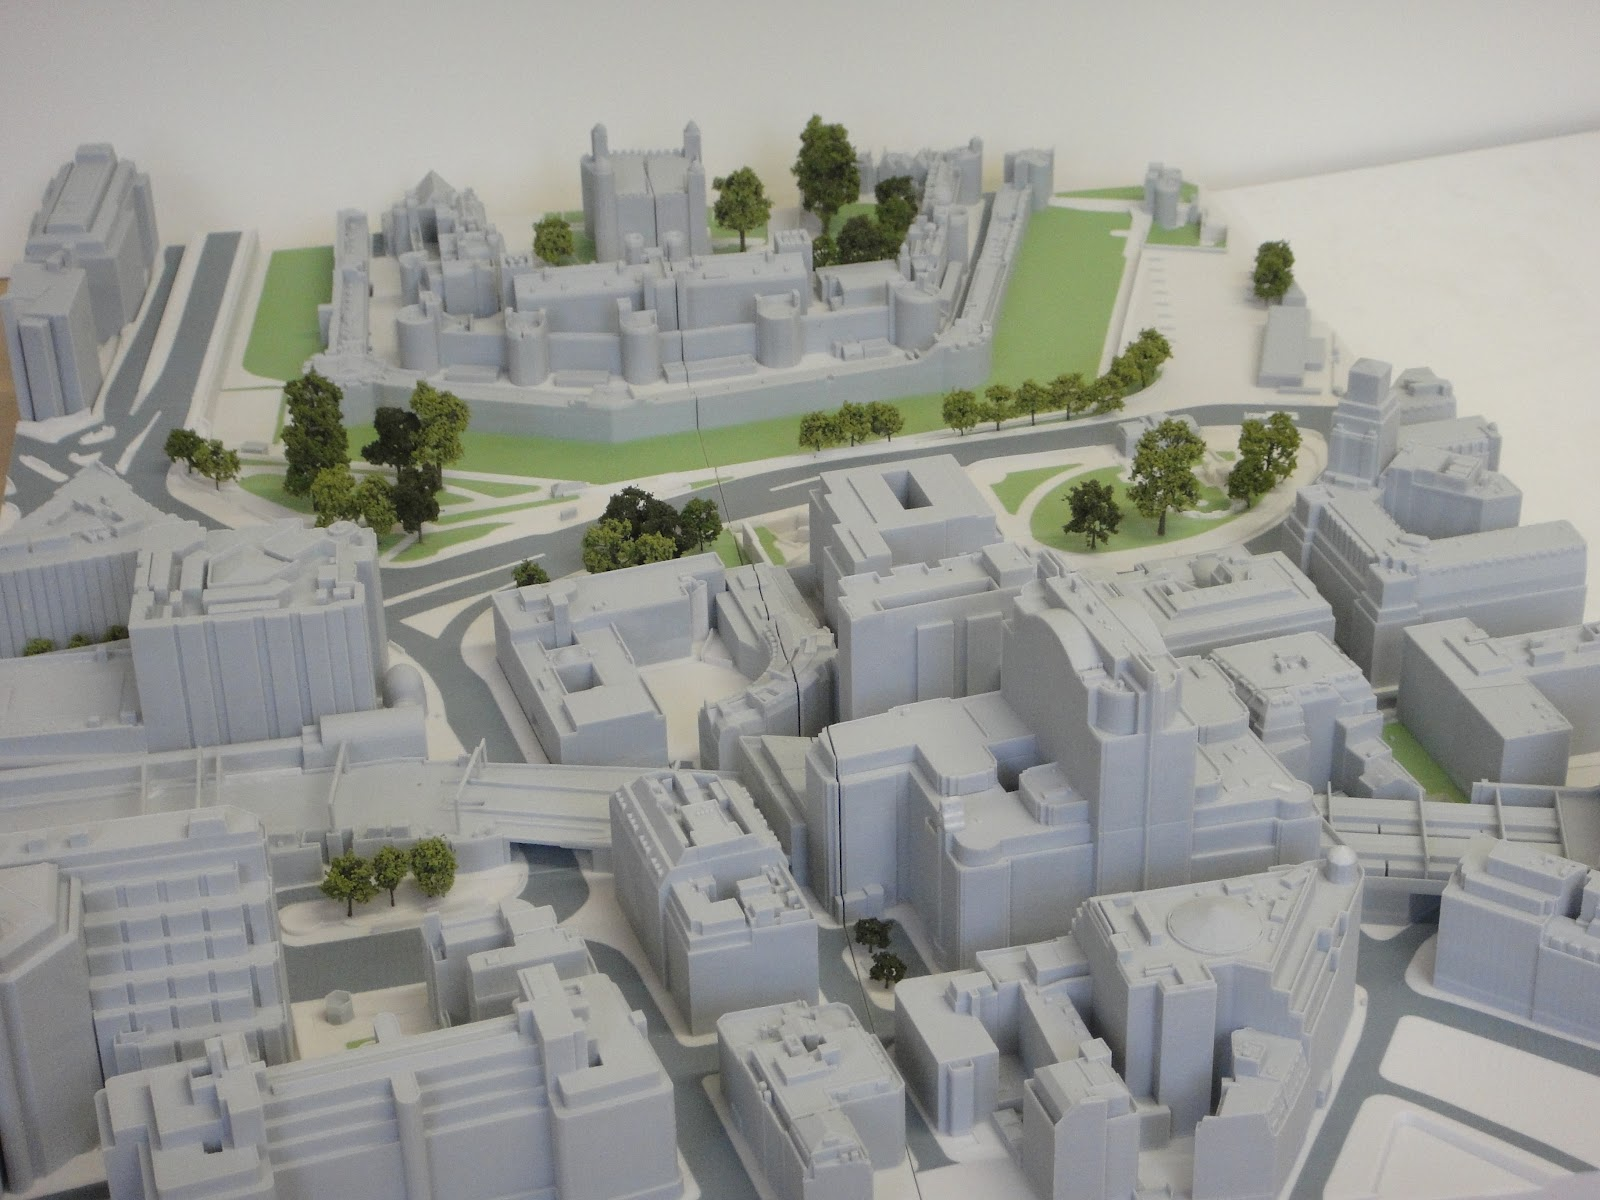 3d Printing In Aec City Modelling In 3d Print